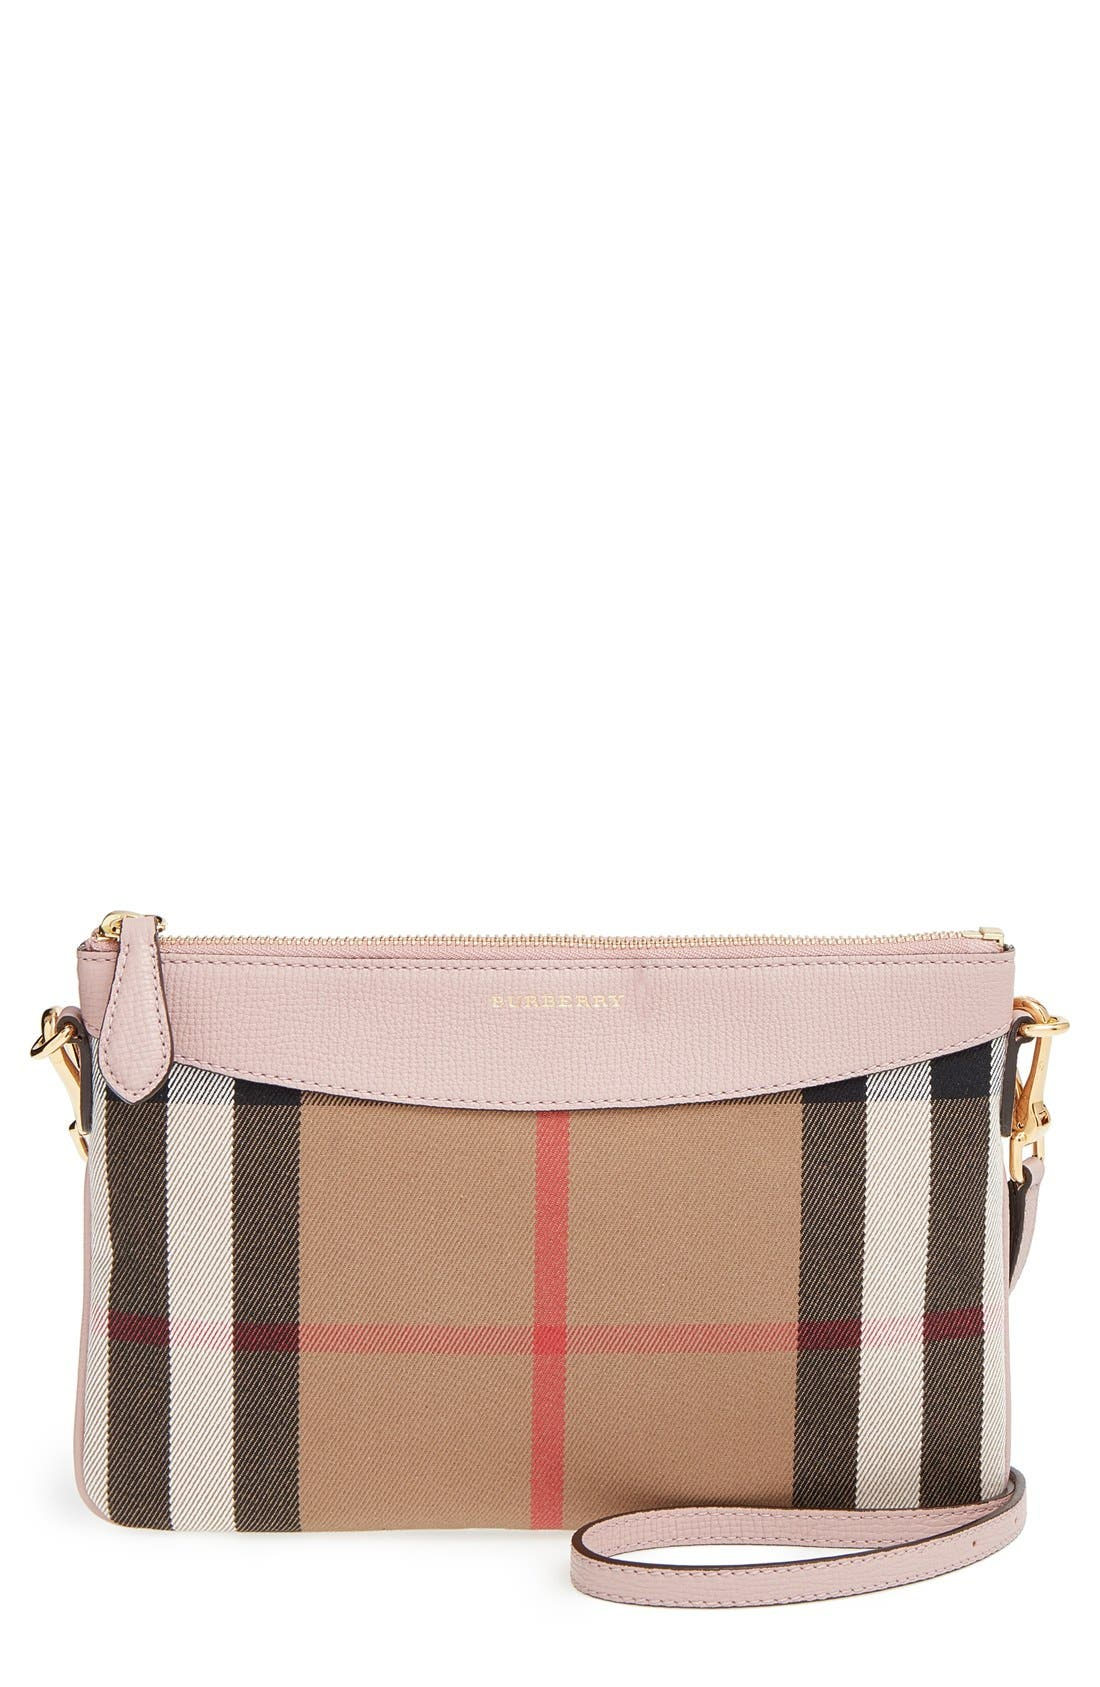 'Peyton - House Check' Crossbody Bag,                         Main,                         color, 500